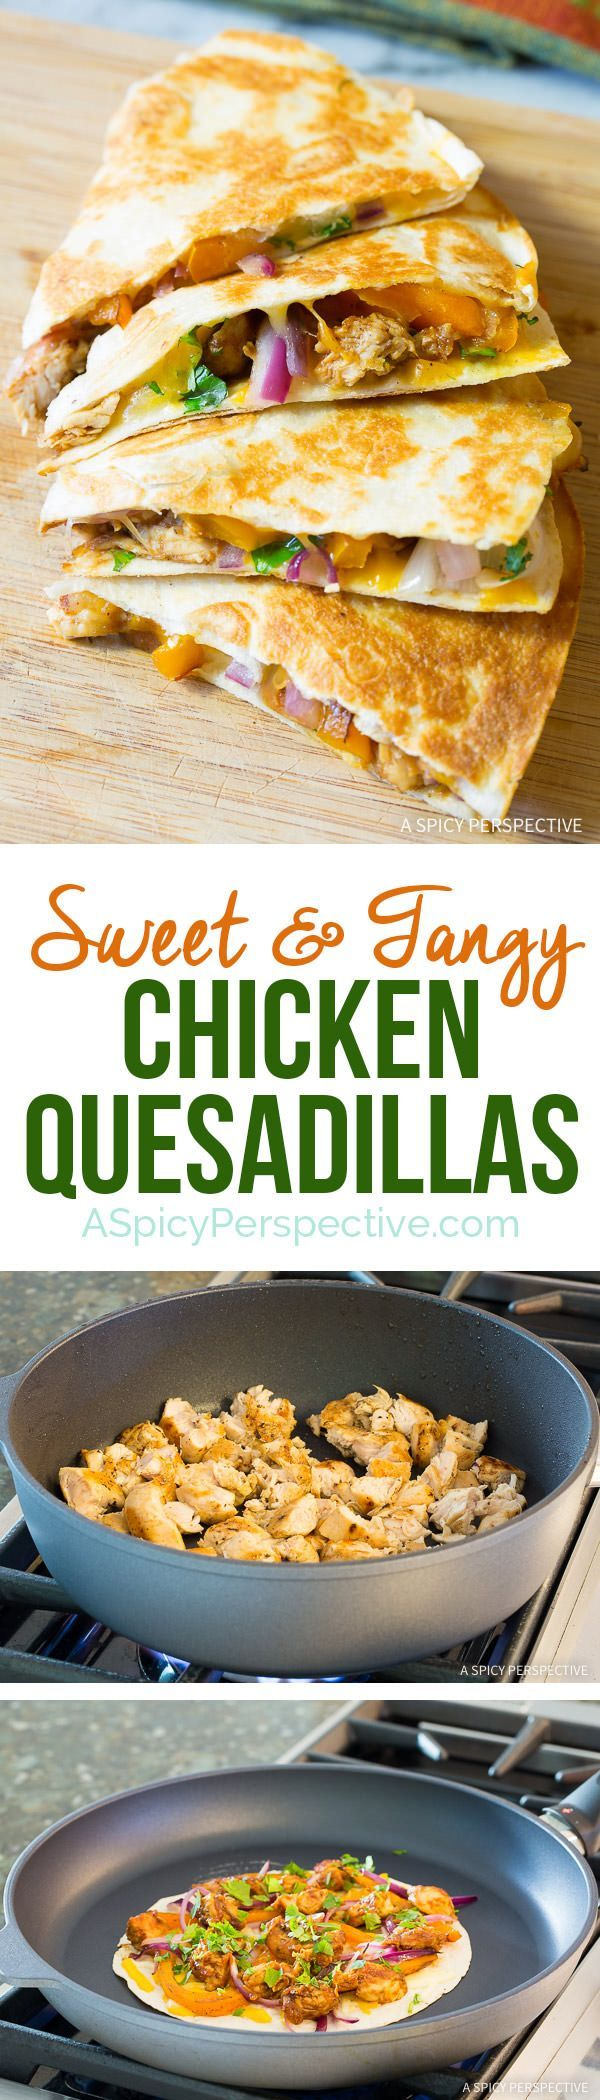 Great for Super Bowl! 10-Ingredient Sweet and Tangy Chicken Quesadillas Recipe